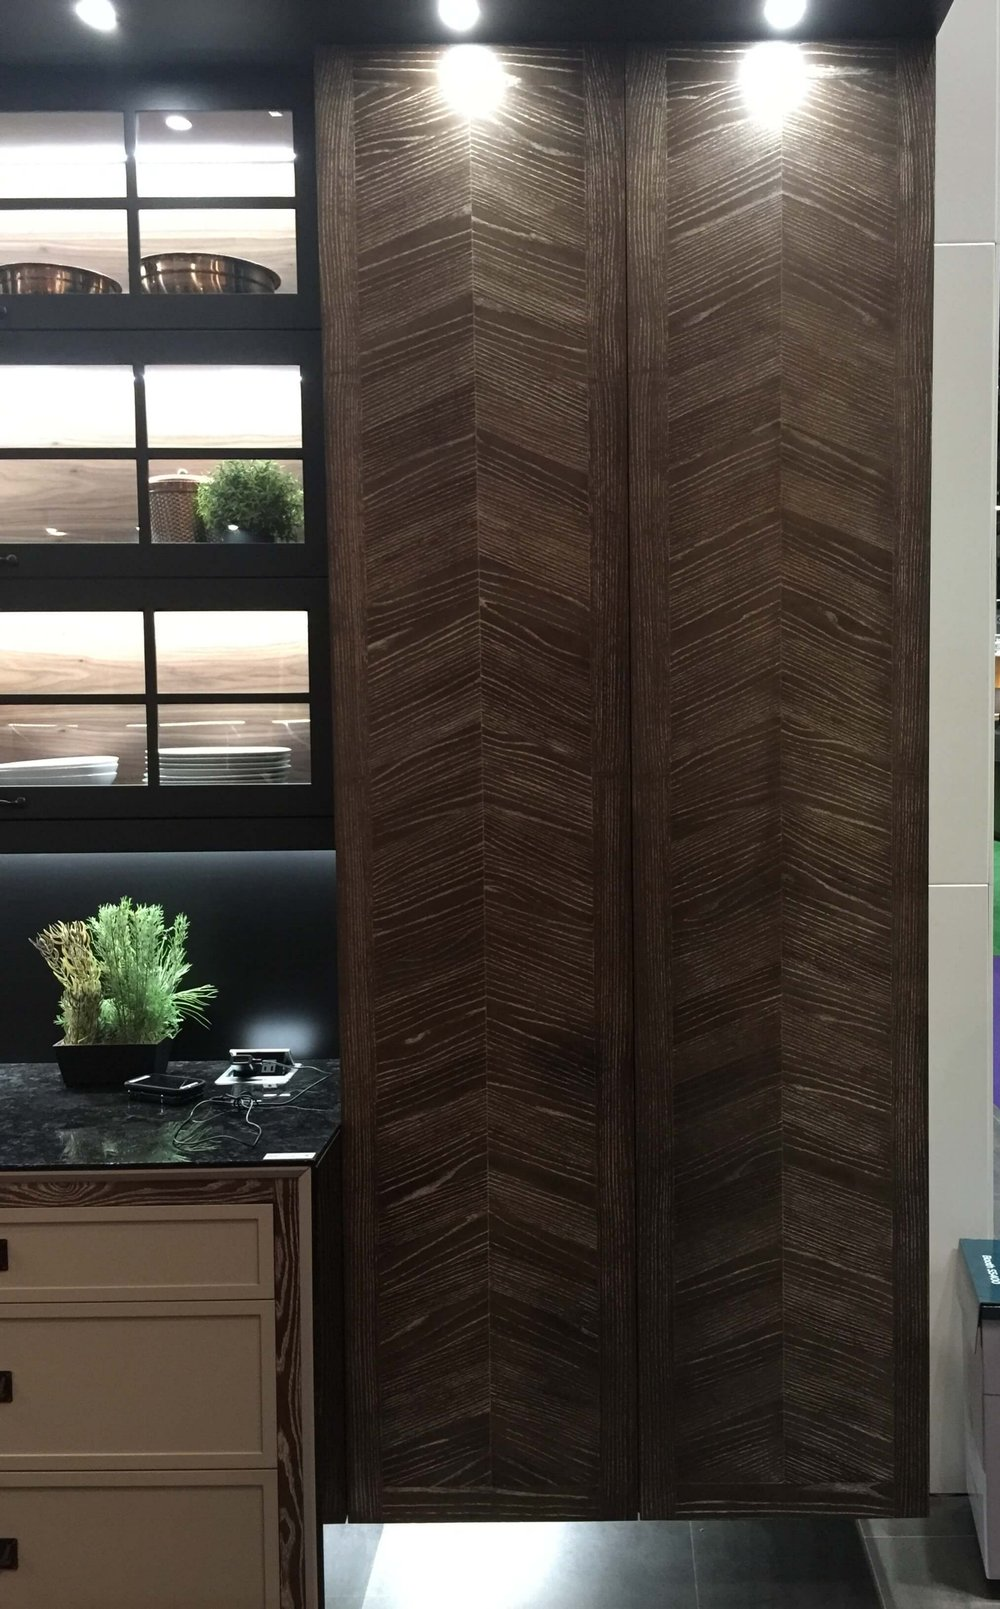 Beautiful chevron patterned oak doors from #cabinetdoors #oakcabinets